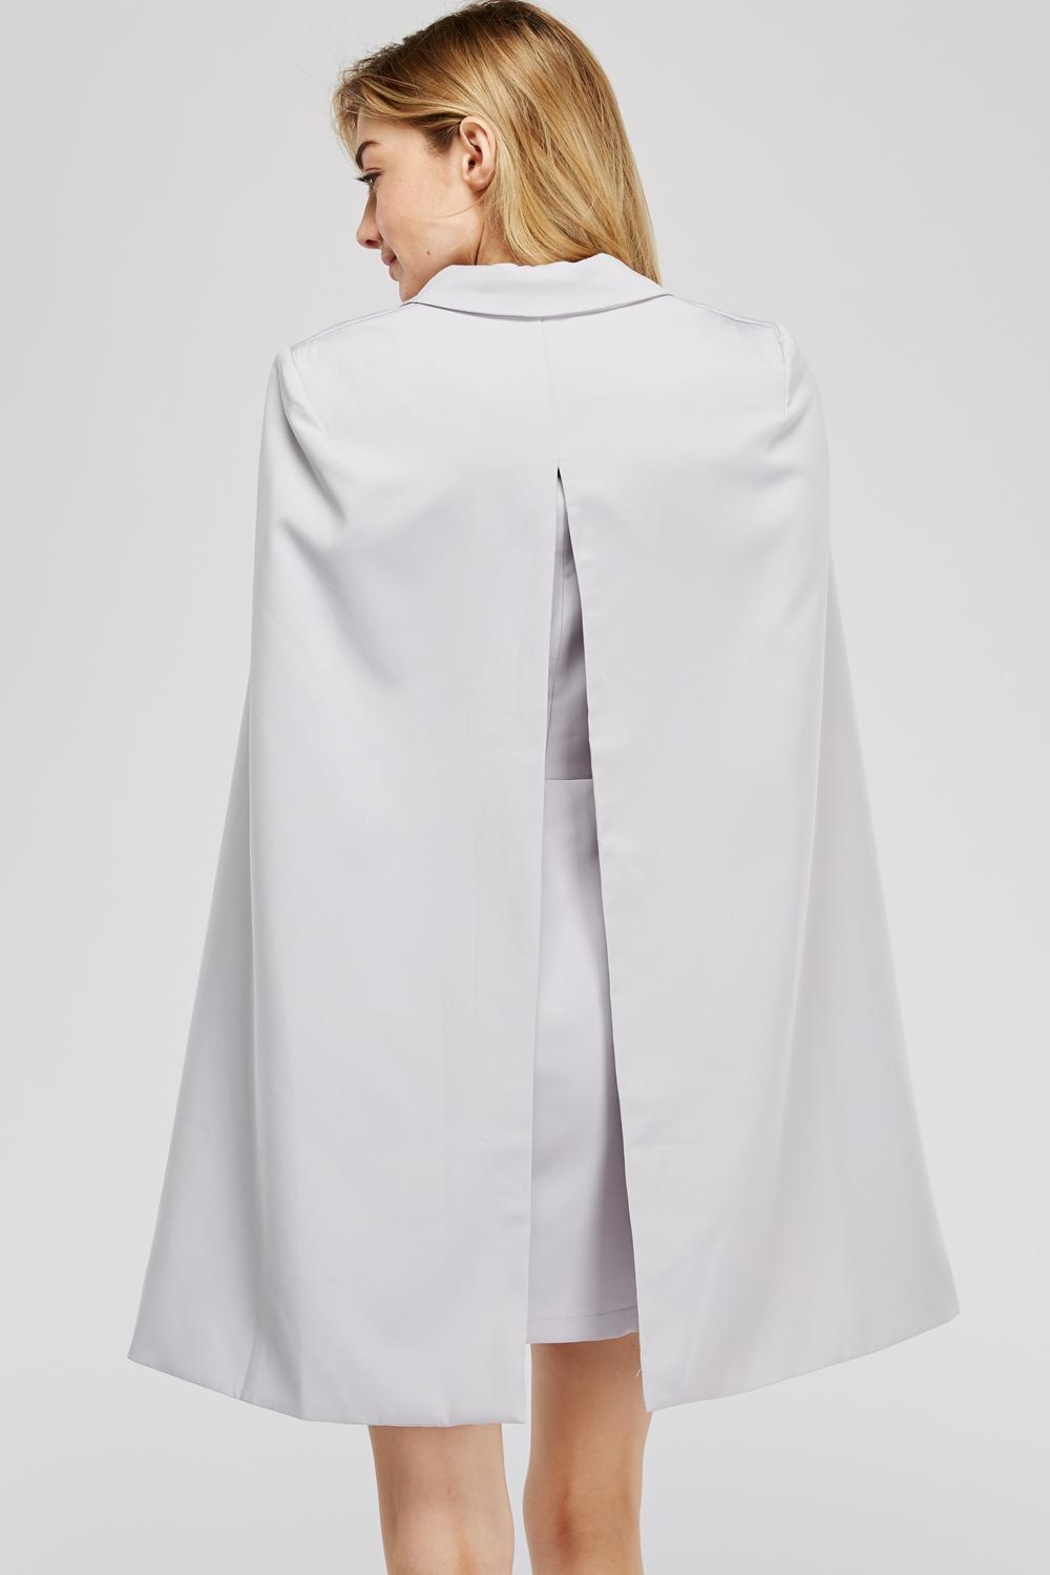 Blithe  Front-Tie Cape Dress - Side Cropped Image